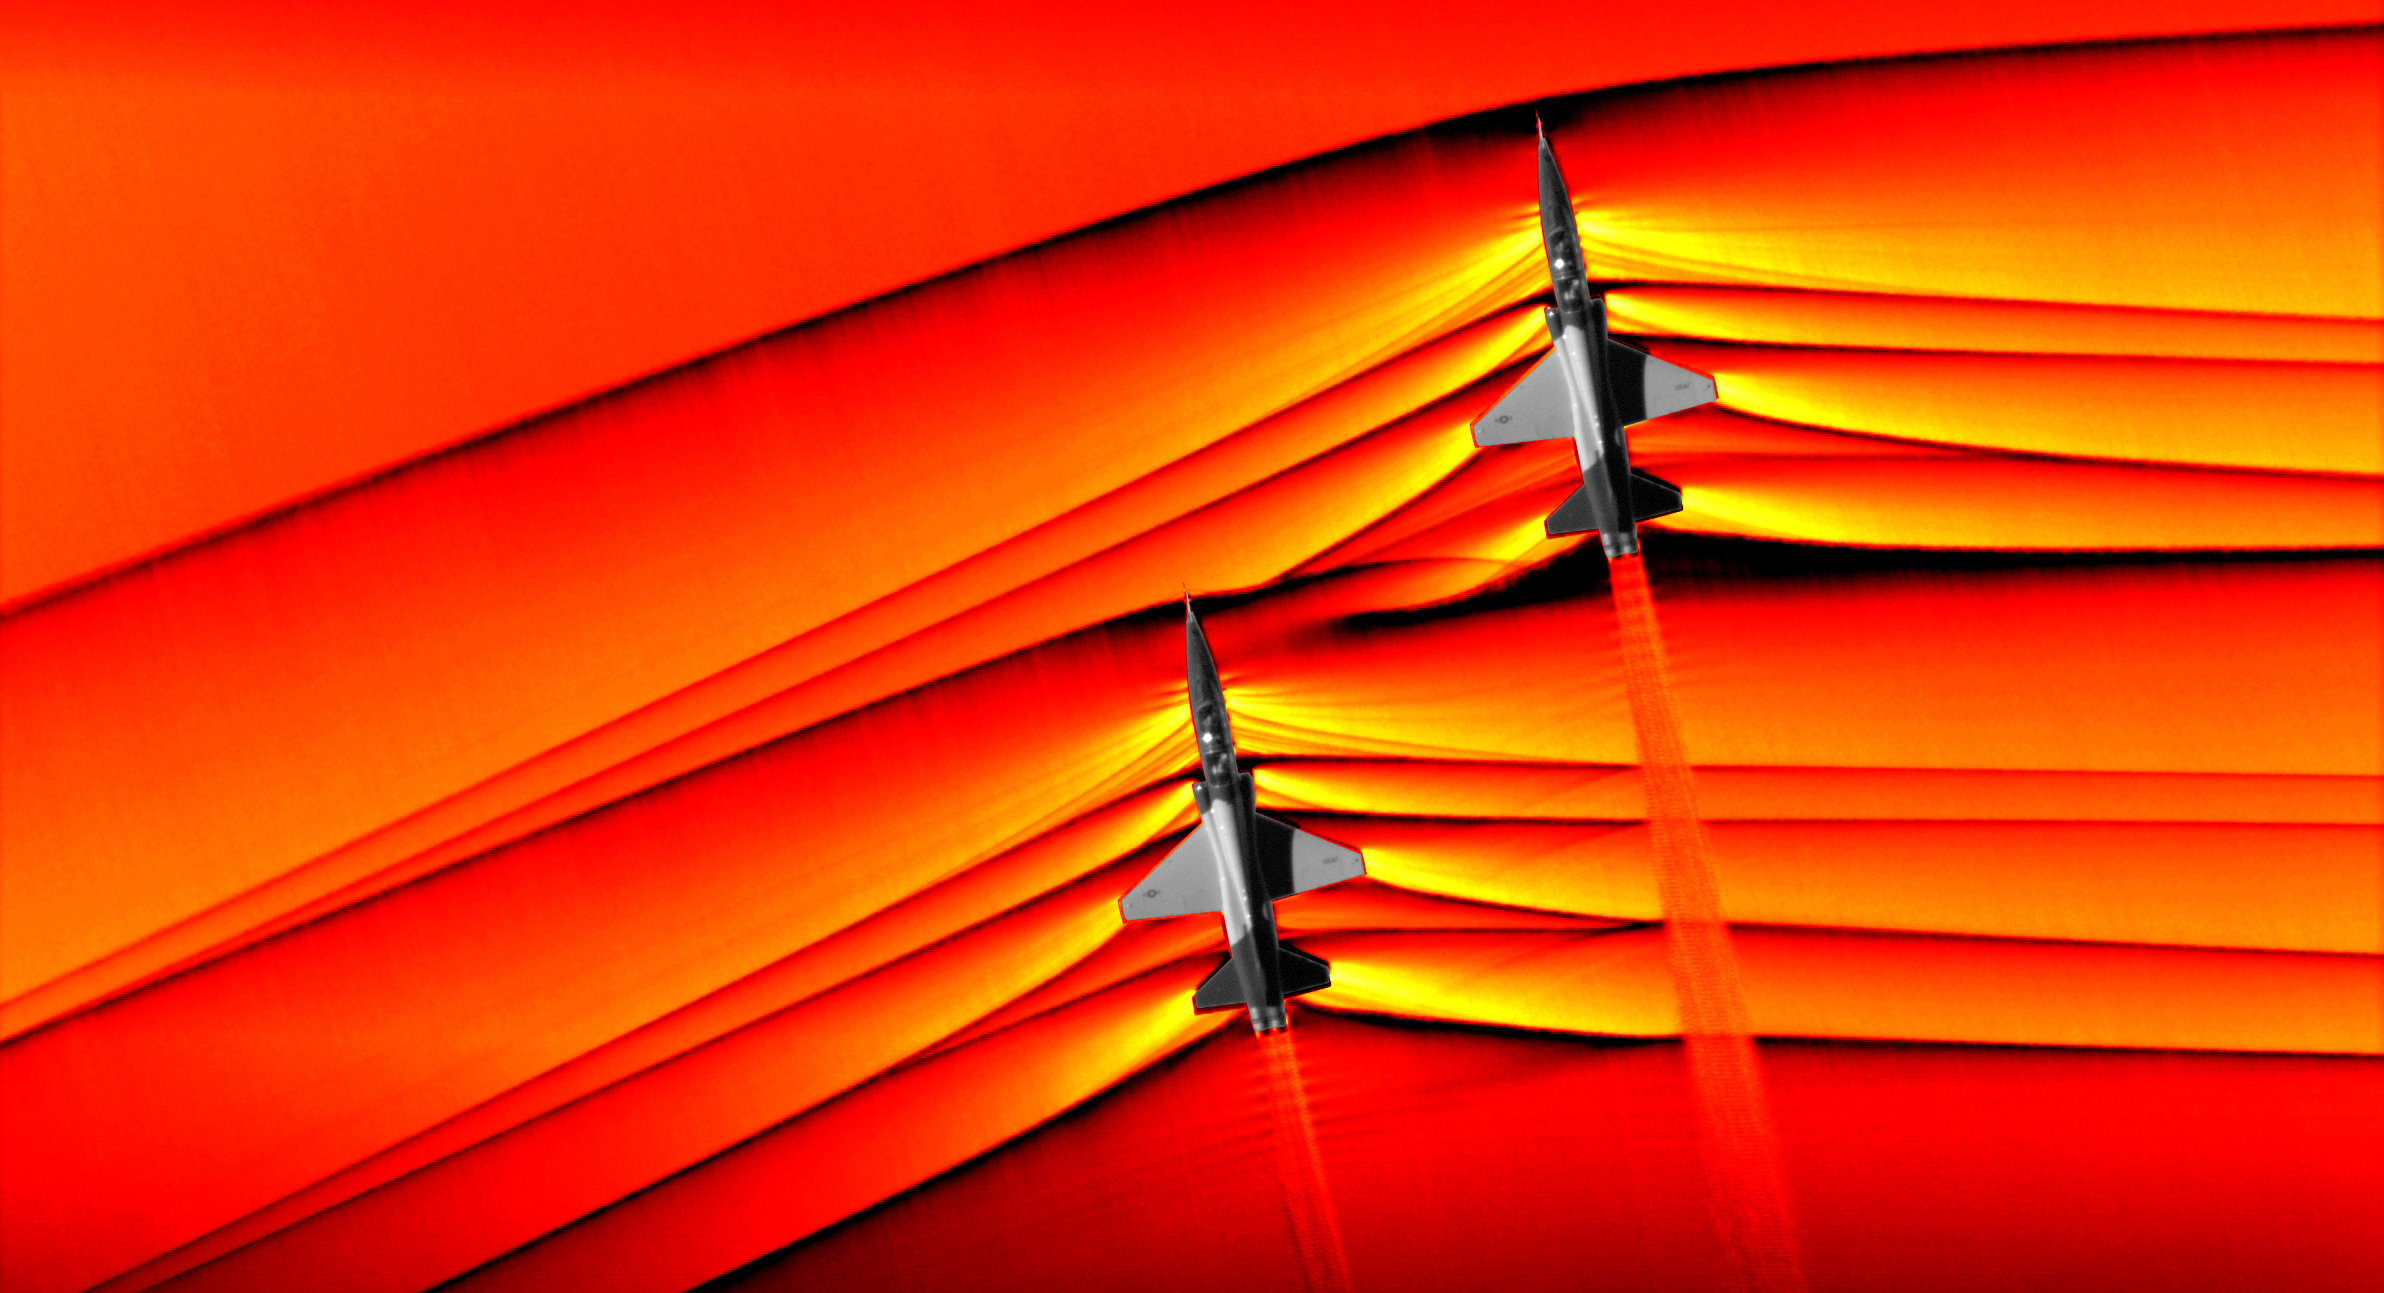 Using the schlieren photography technique, NASA was able to capture the first air-to-air images of the interaction of shockwaves from two supersonic aircraft flying in formation. These two U.S. Air Force Test Pilot School T-38 aircraft are flying in formation, approximately 30 feet apart, at supersonic speeds, or faster than the speed of sound, producing shockwaves that are typically heard on the ground as a sonic boom. The images, originally monochromatic and shown here as colorized composite images, were captured during a supersonic flight series flown, in part, to better understand how shocks interact with aircraft plumes, as well as with each other.